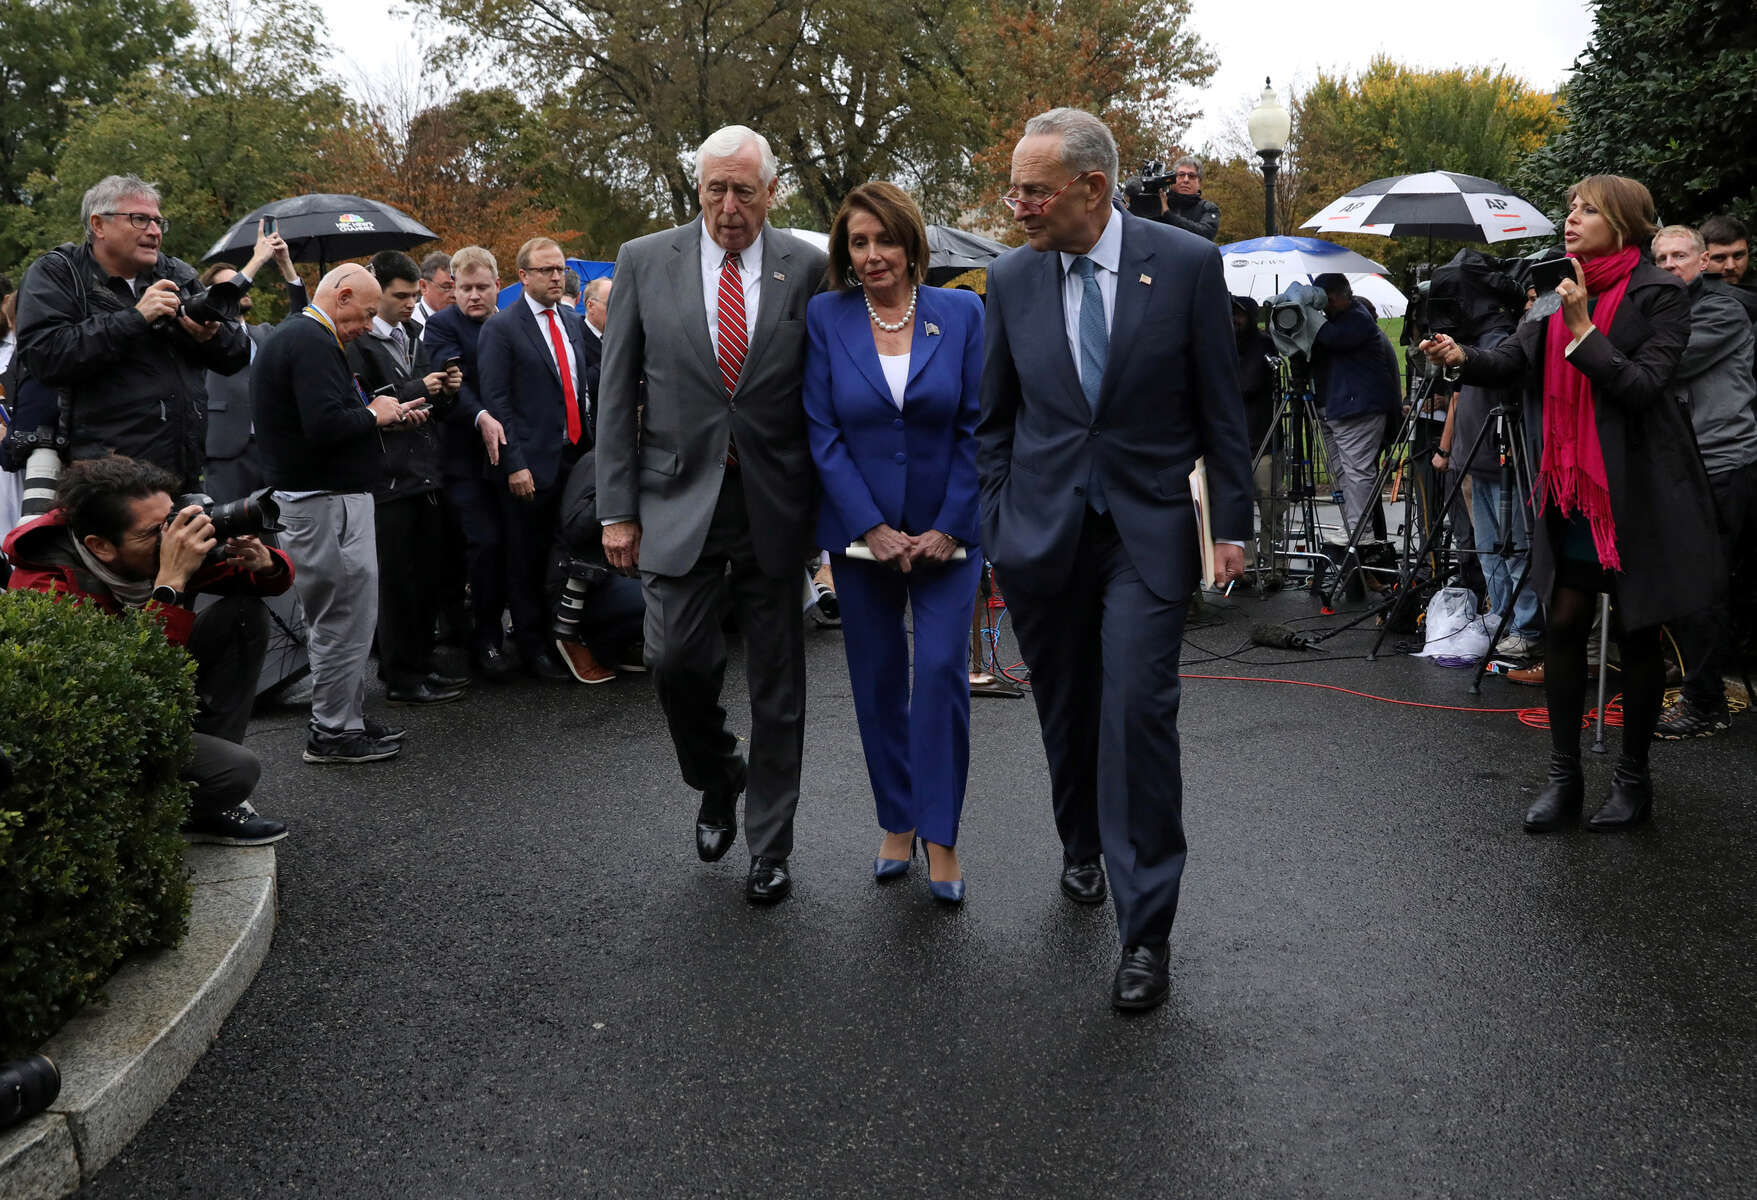 House Majority Leader Steny Hoyer (D-MD), House Speaker Nancy Pelosi (D-CA) and U.S. Senate Minority Leader Chuck Schumer (D-NY) walk away from a news conference after meeting with U.S. President Donald Trump about Trump's decision to withdraw US troops from Syria at the White House in Washington, U.S., October 16, 2019. Democrats said they walked out of the meeting after it spiraled into name calling and insults. Pelosi said she prays for the president and called the event a {quote}a very serious meltdown{quote}. Pelosi would eventually call for the impeachment of the president based on mounting evidence the democrats believed pointed to an abuse of power by the president based on a phone call he made to President Zelensky asking for an investigation into his political rival Joe Biden's son.